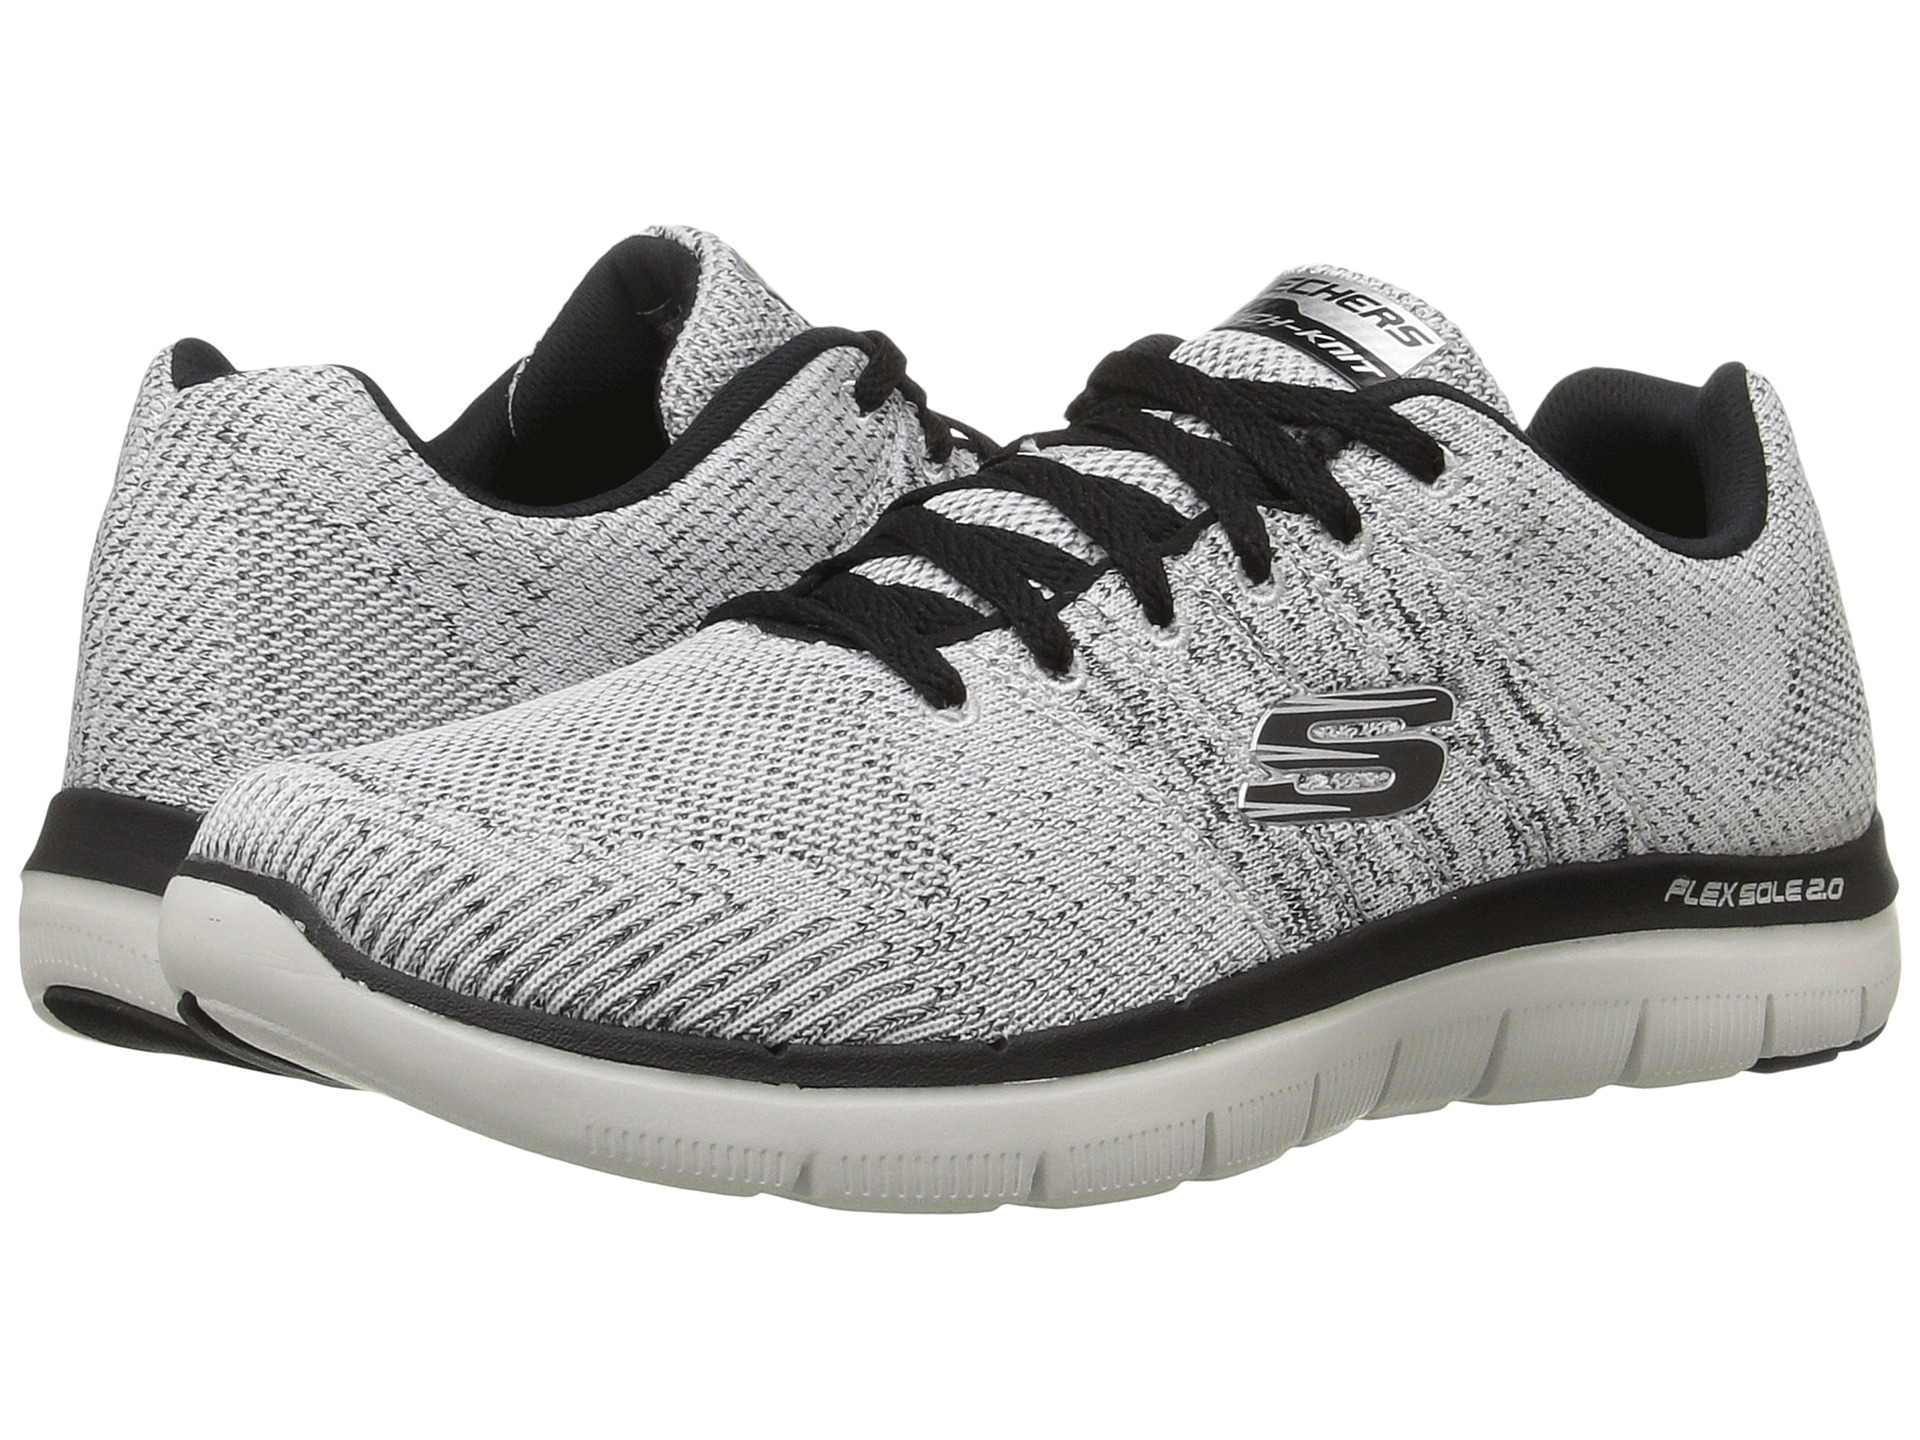 skechers flex appeal 2.0 mens